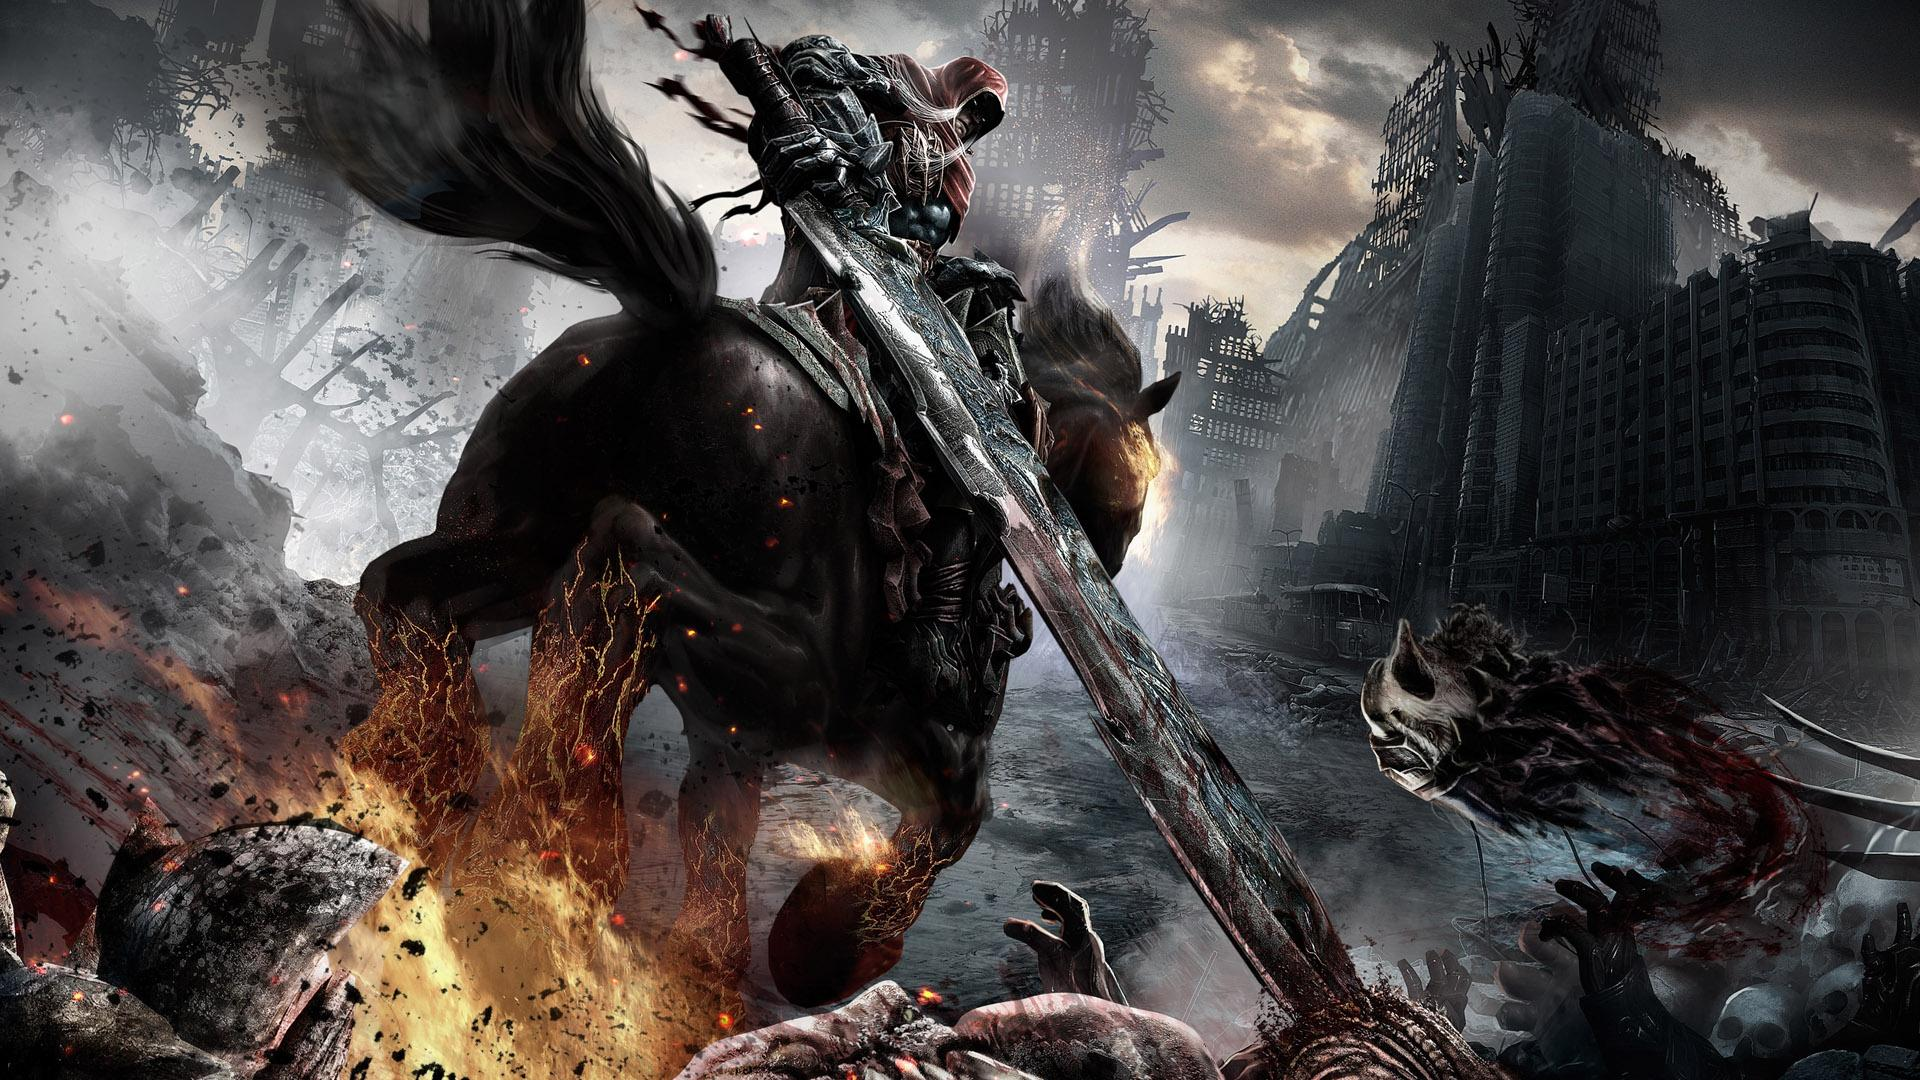 cool video game wallpapers HD 1920x1080